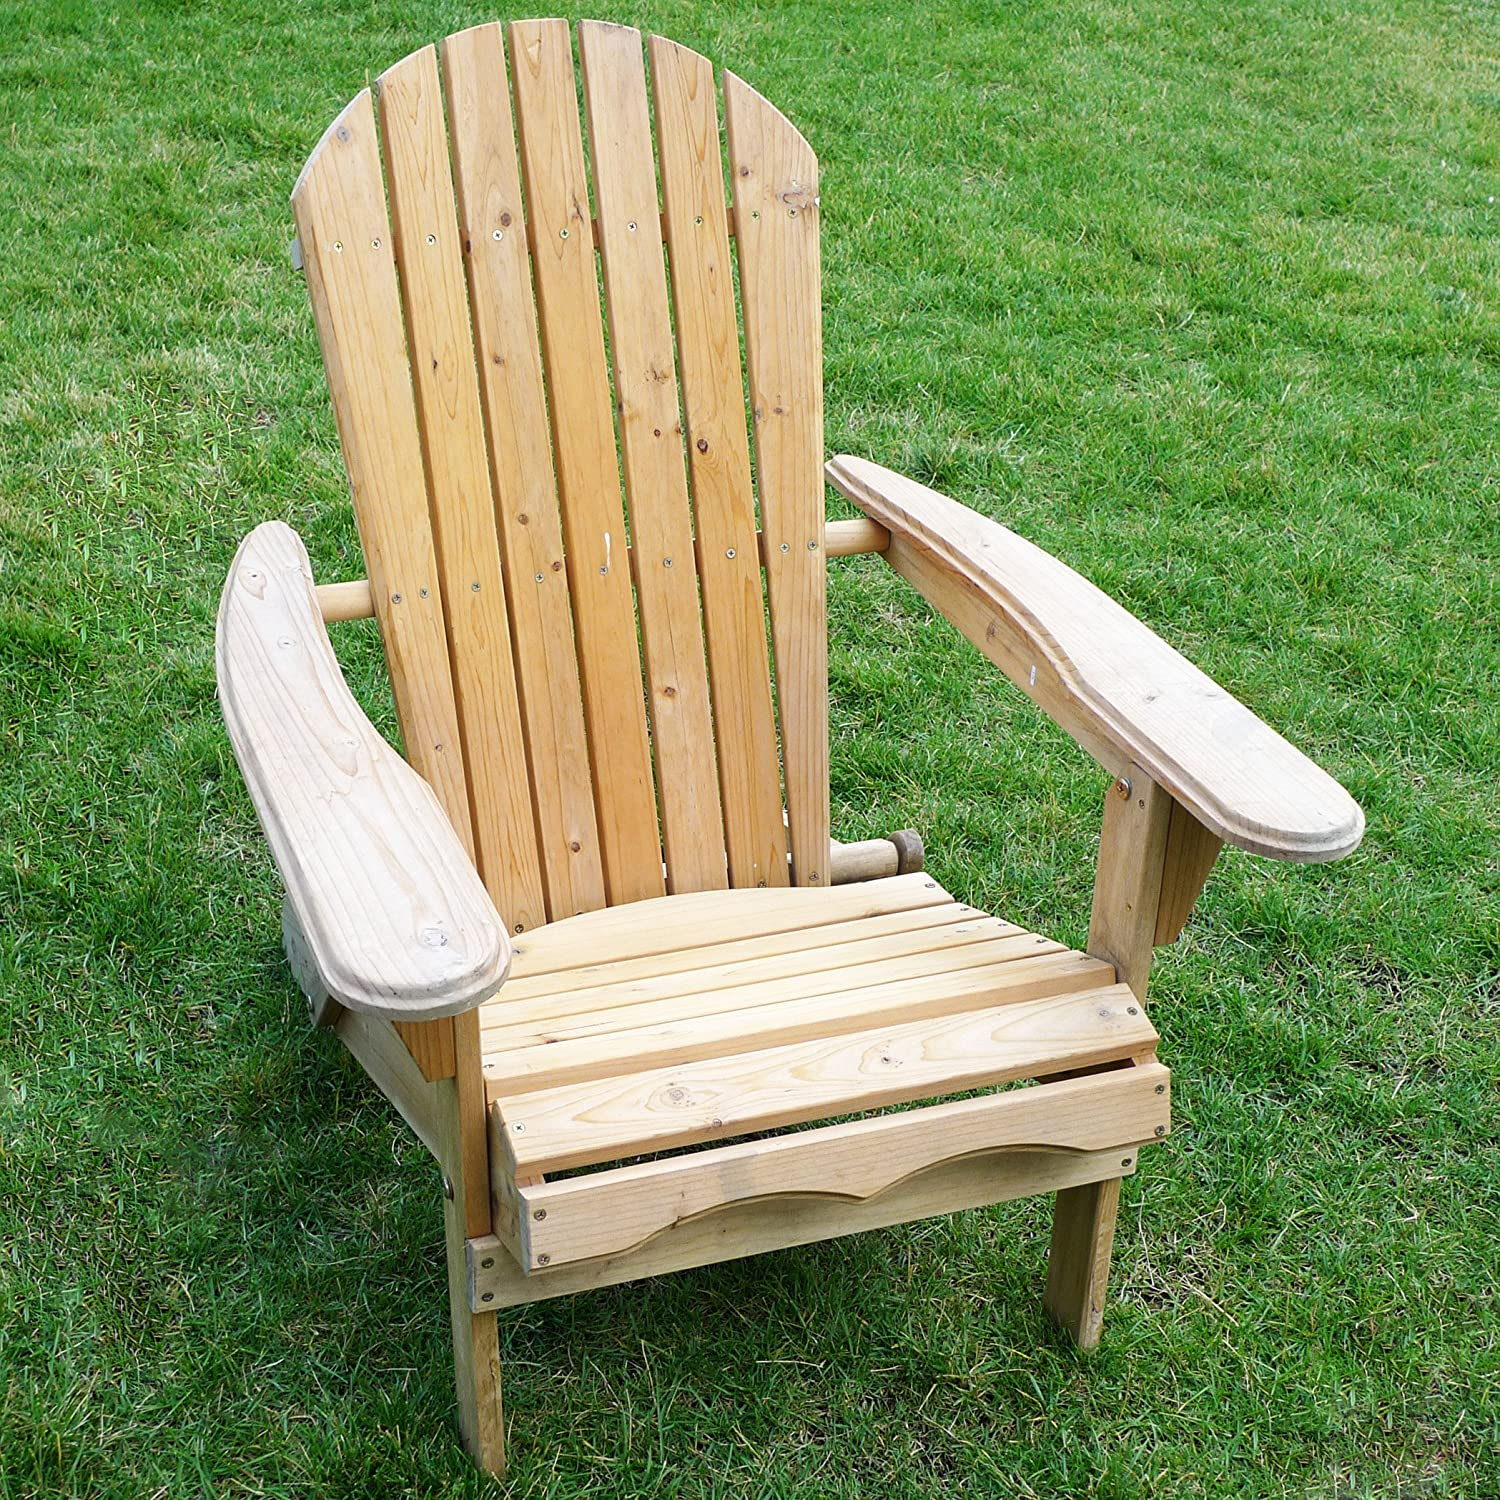 amazoncom merry garden foldable adirondack chair wooden adirondack chair garden u0026 outdoor